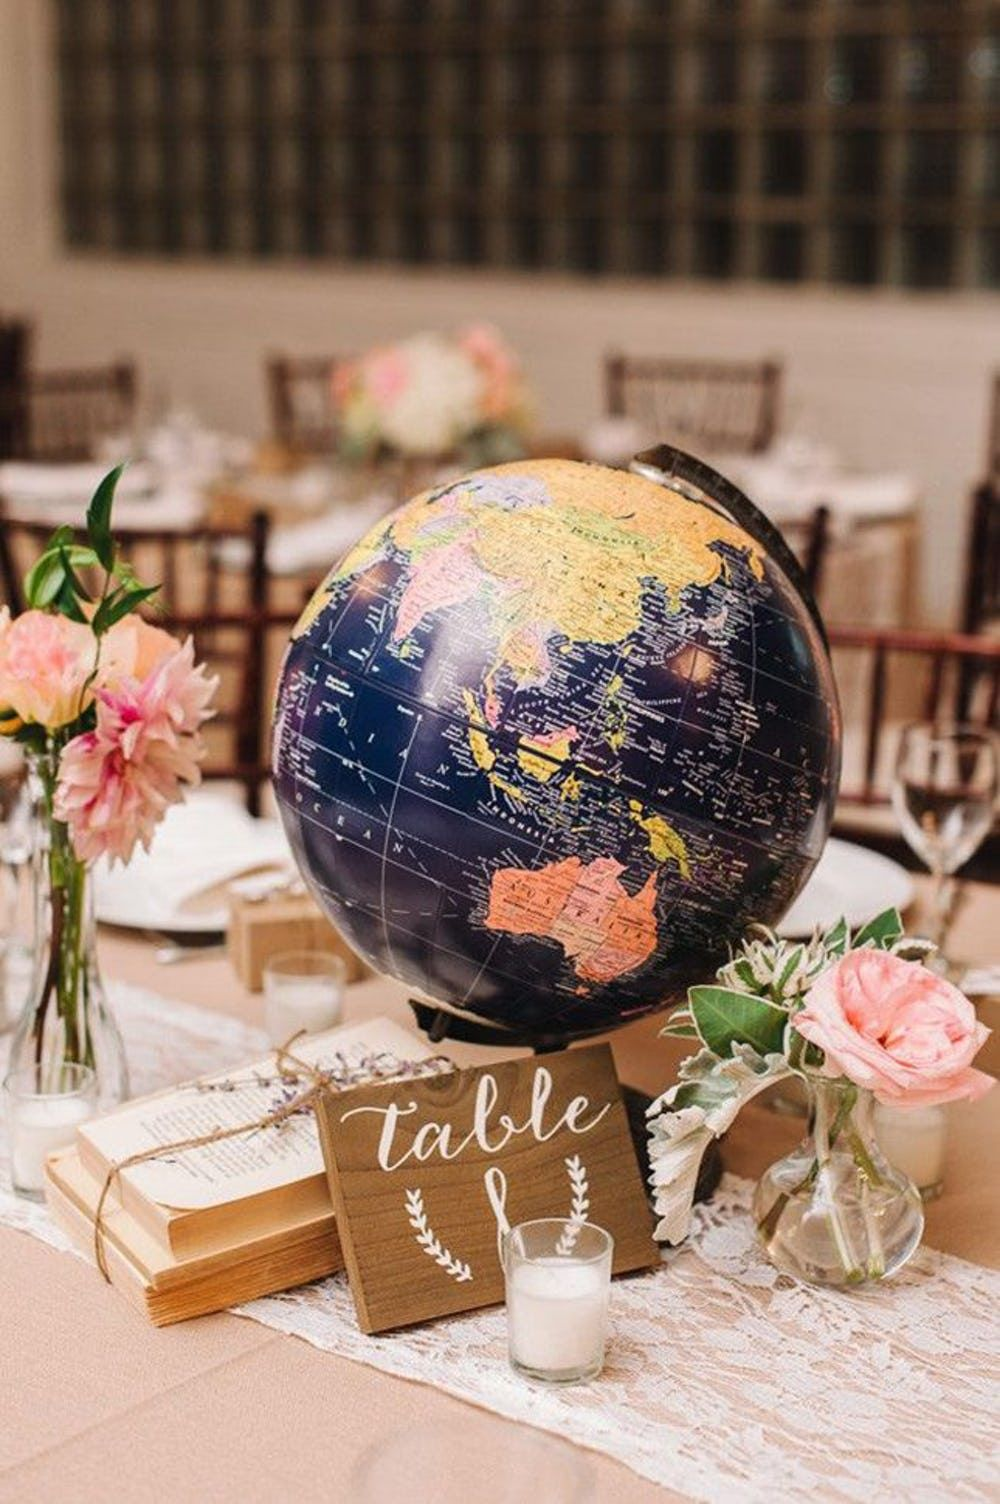 The Best Wedding Theme for Your Big Day, According to Your Zodiac Sign